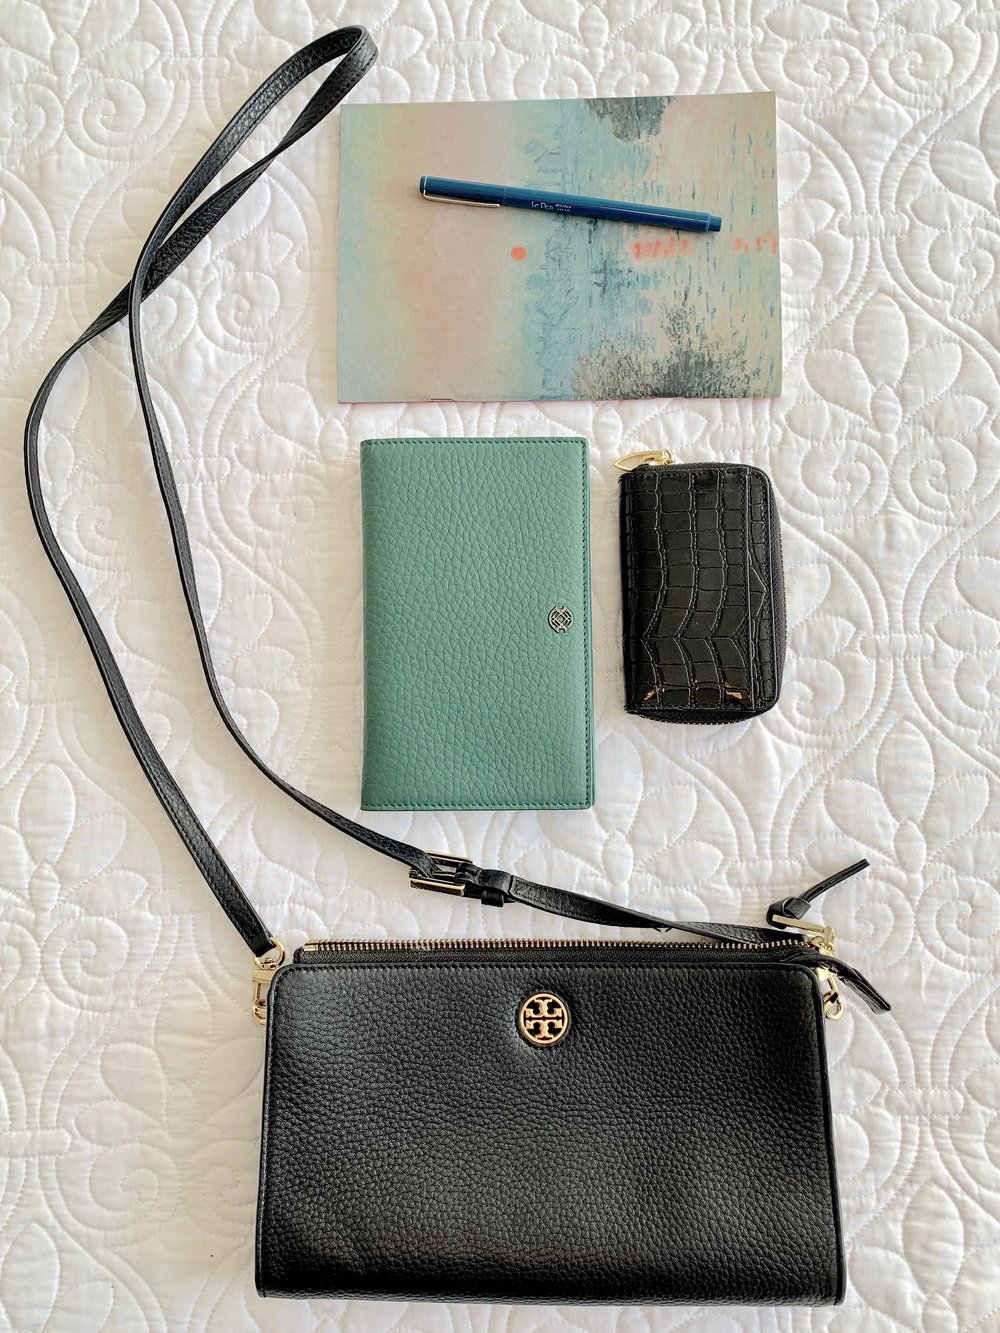 Purse-in-a-Purse + Travel Notepad/Pen -